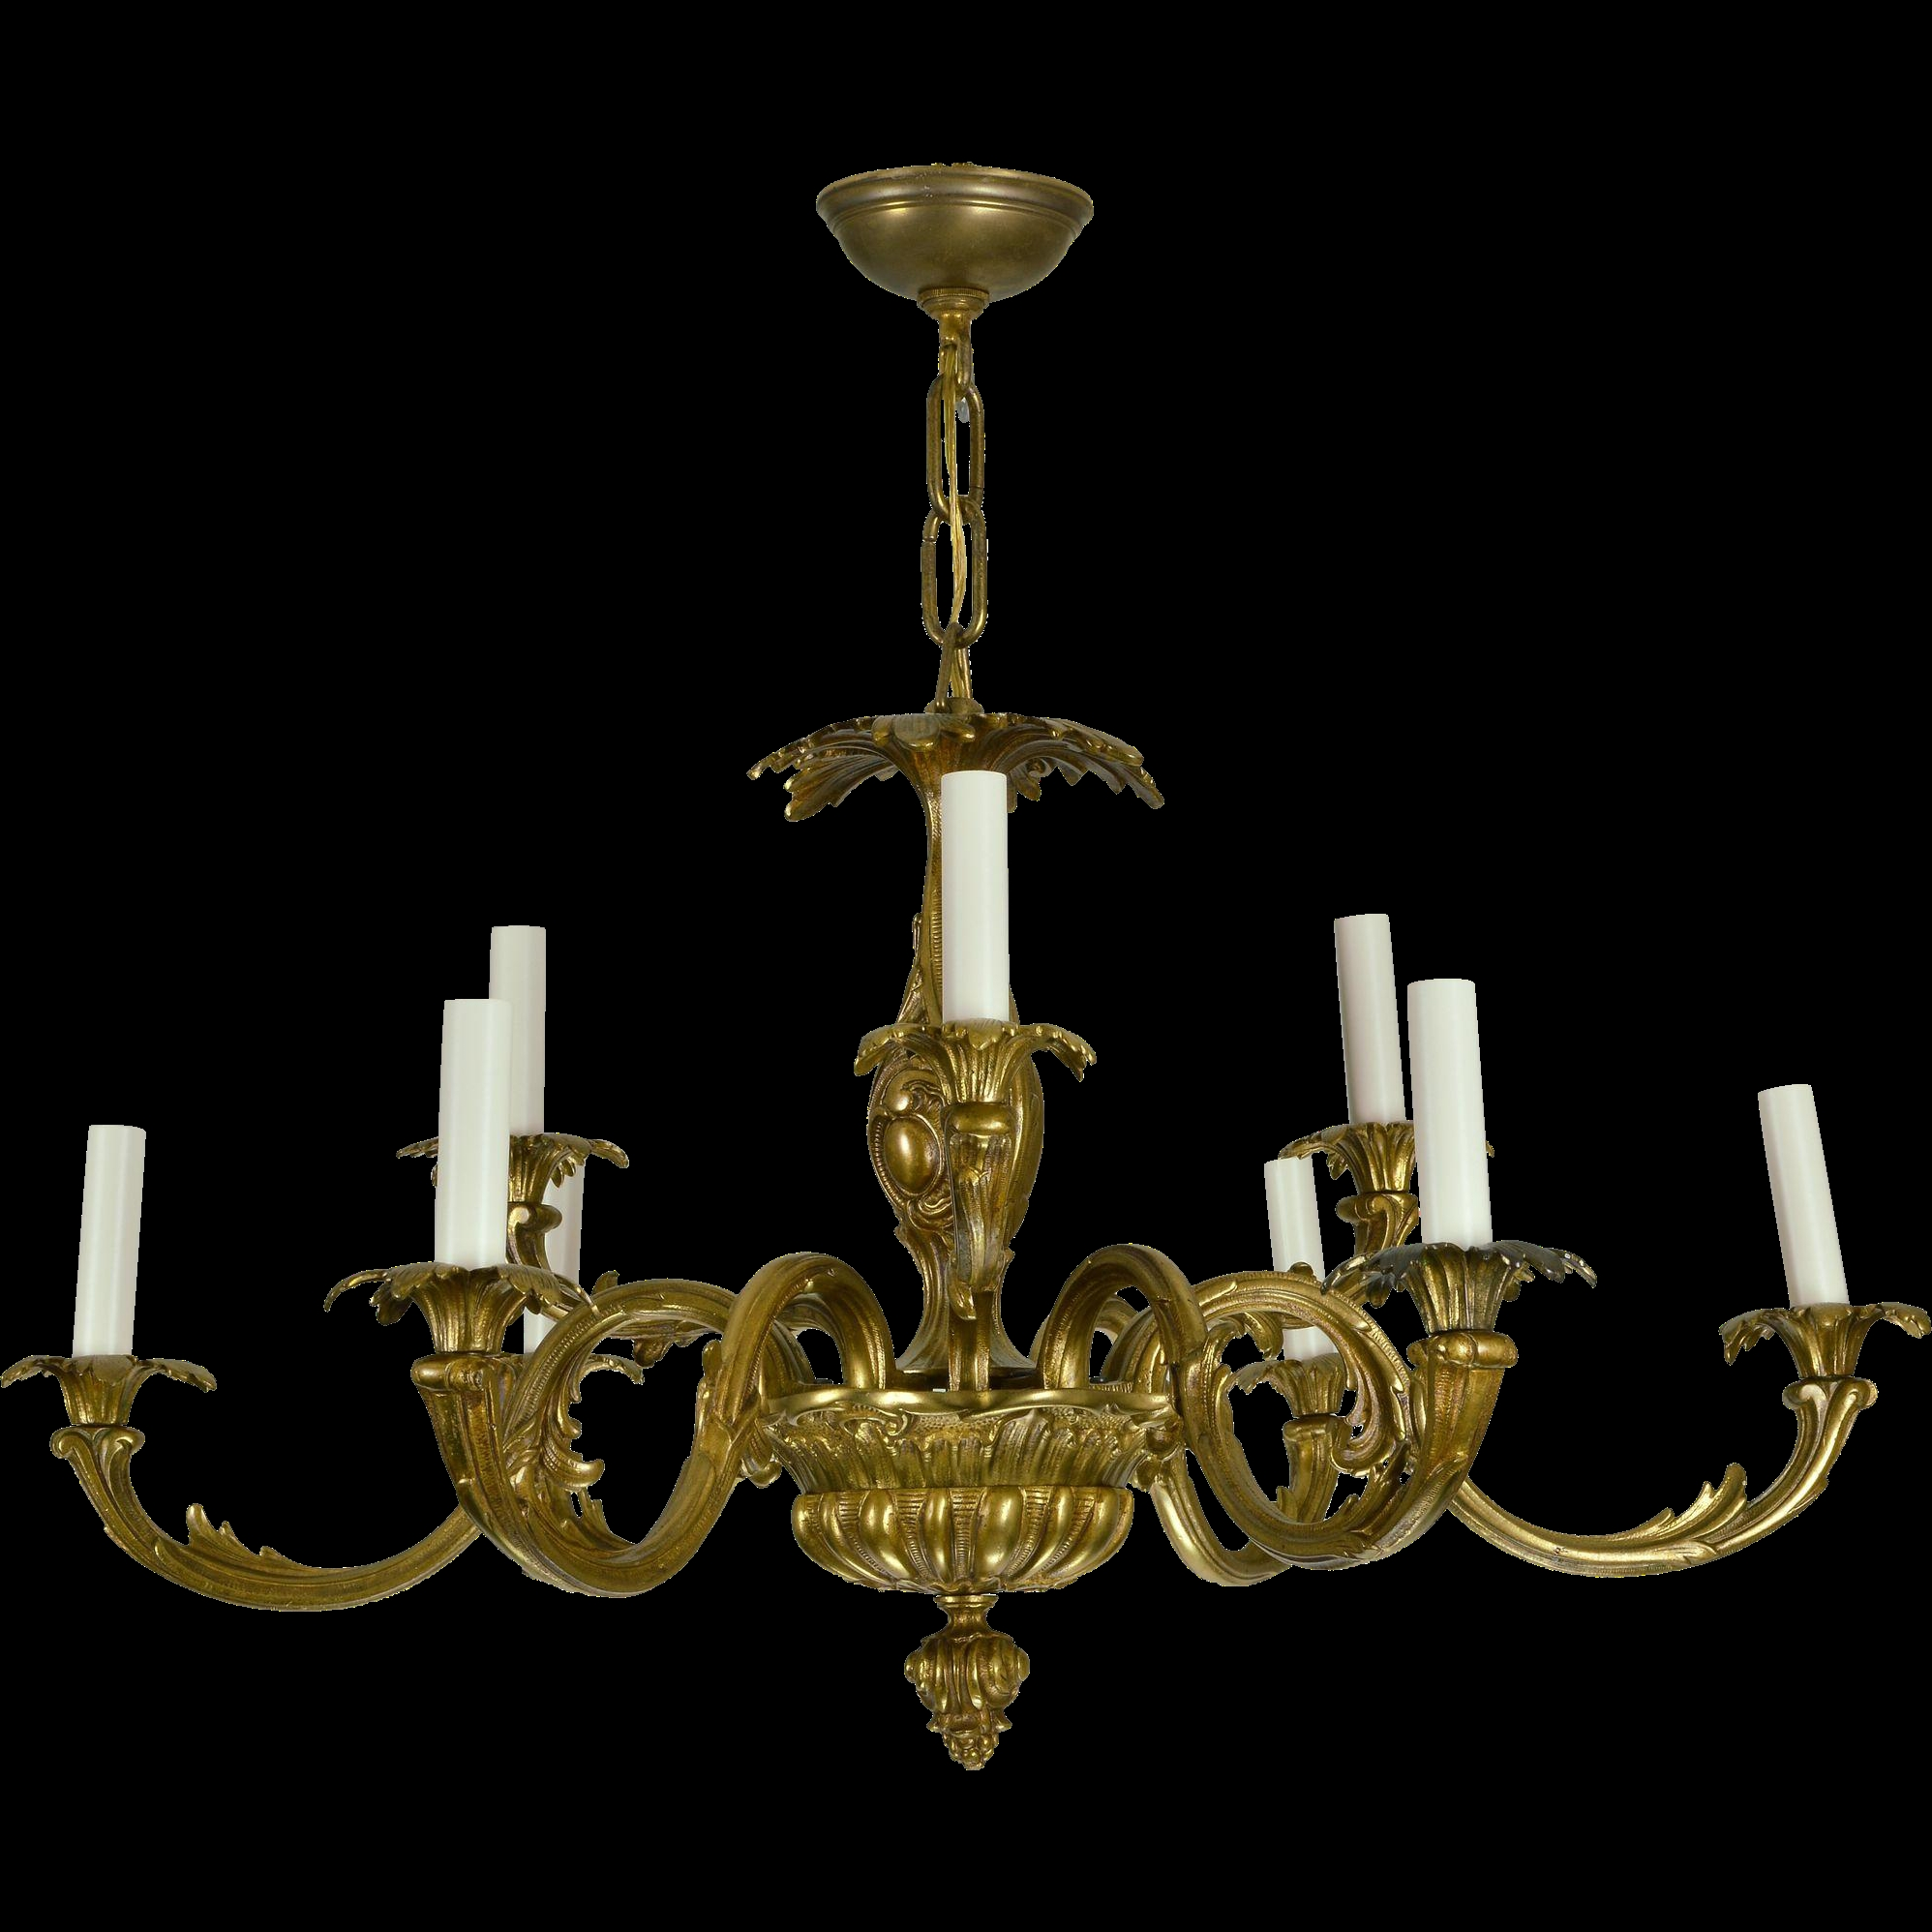 15 s Old Brass Chandelier